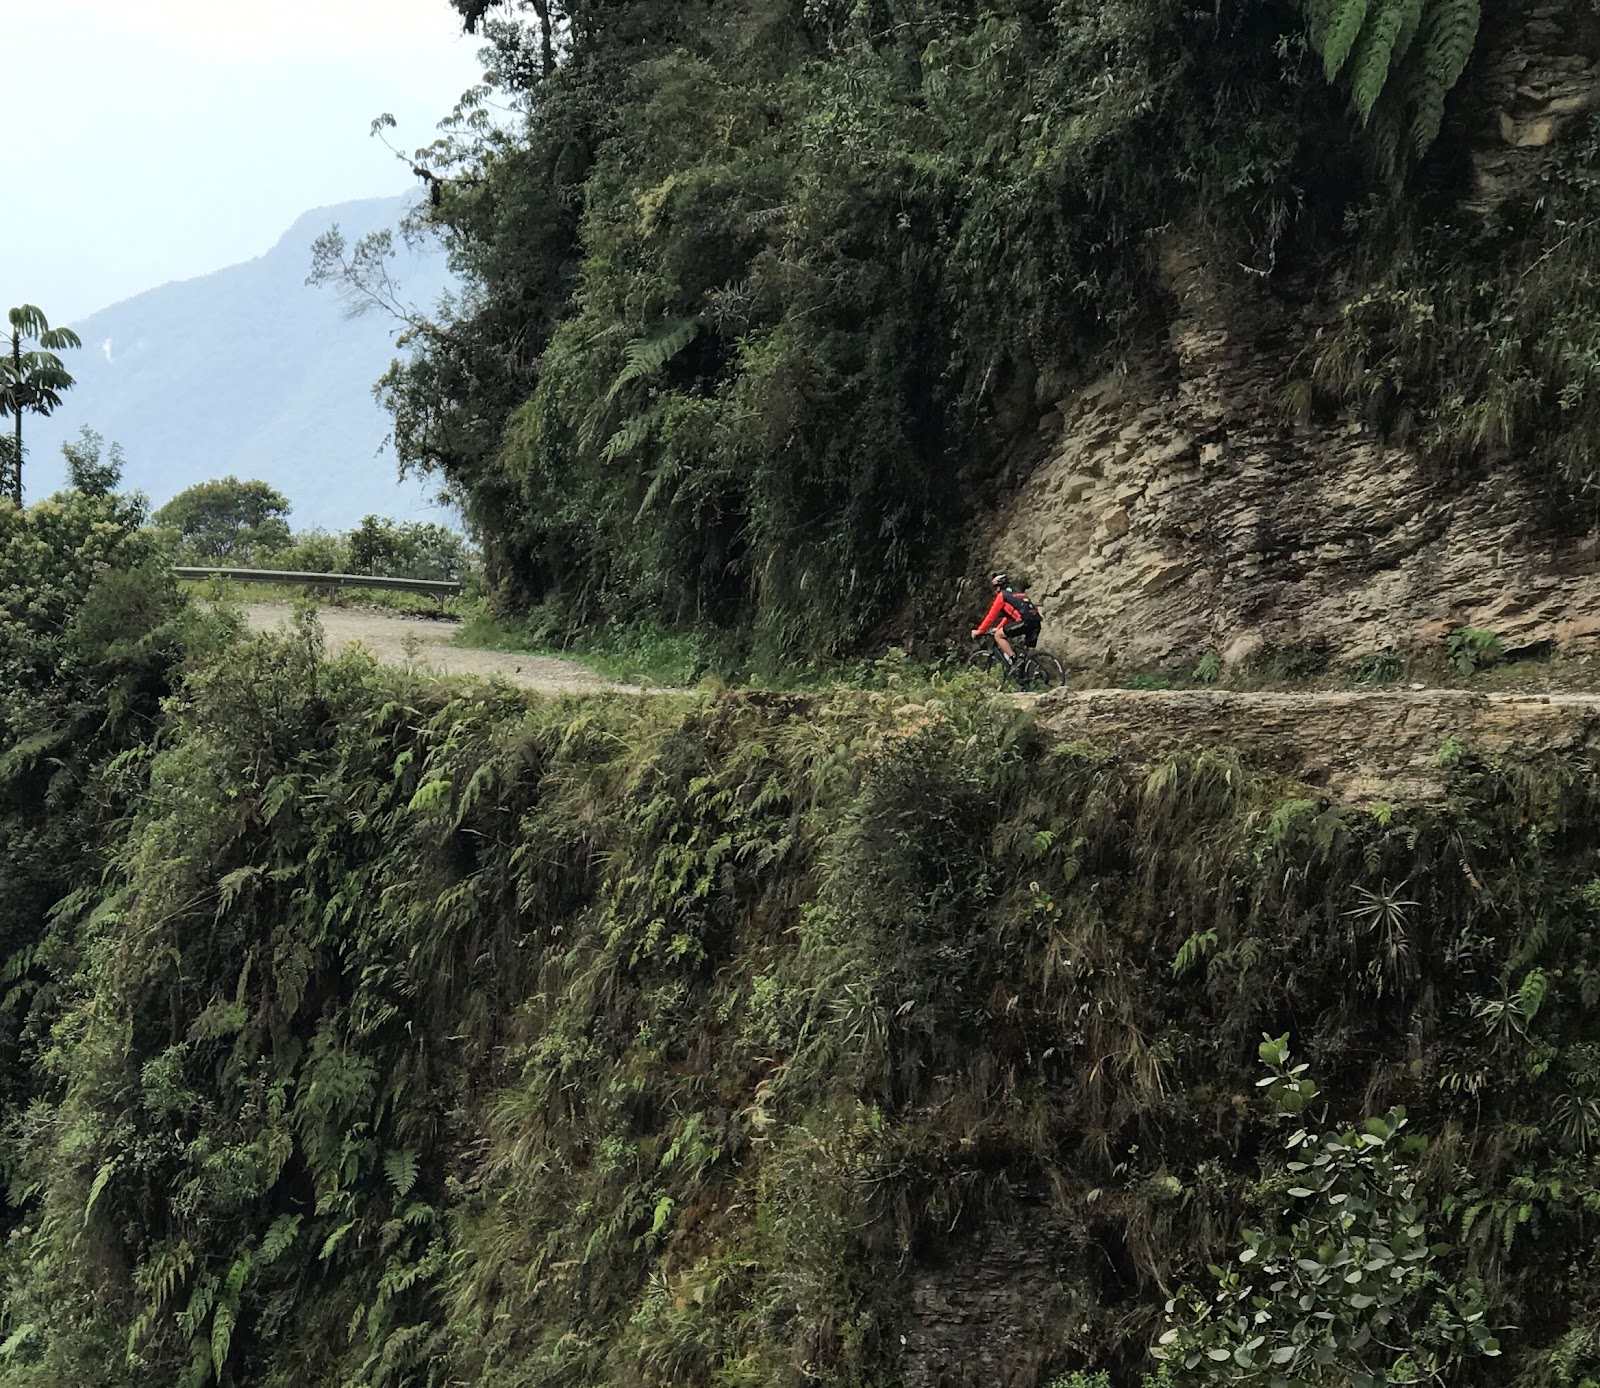 Bicyclist riding along narrow road with cliff on Death Road